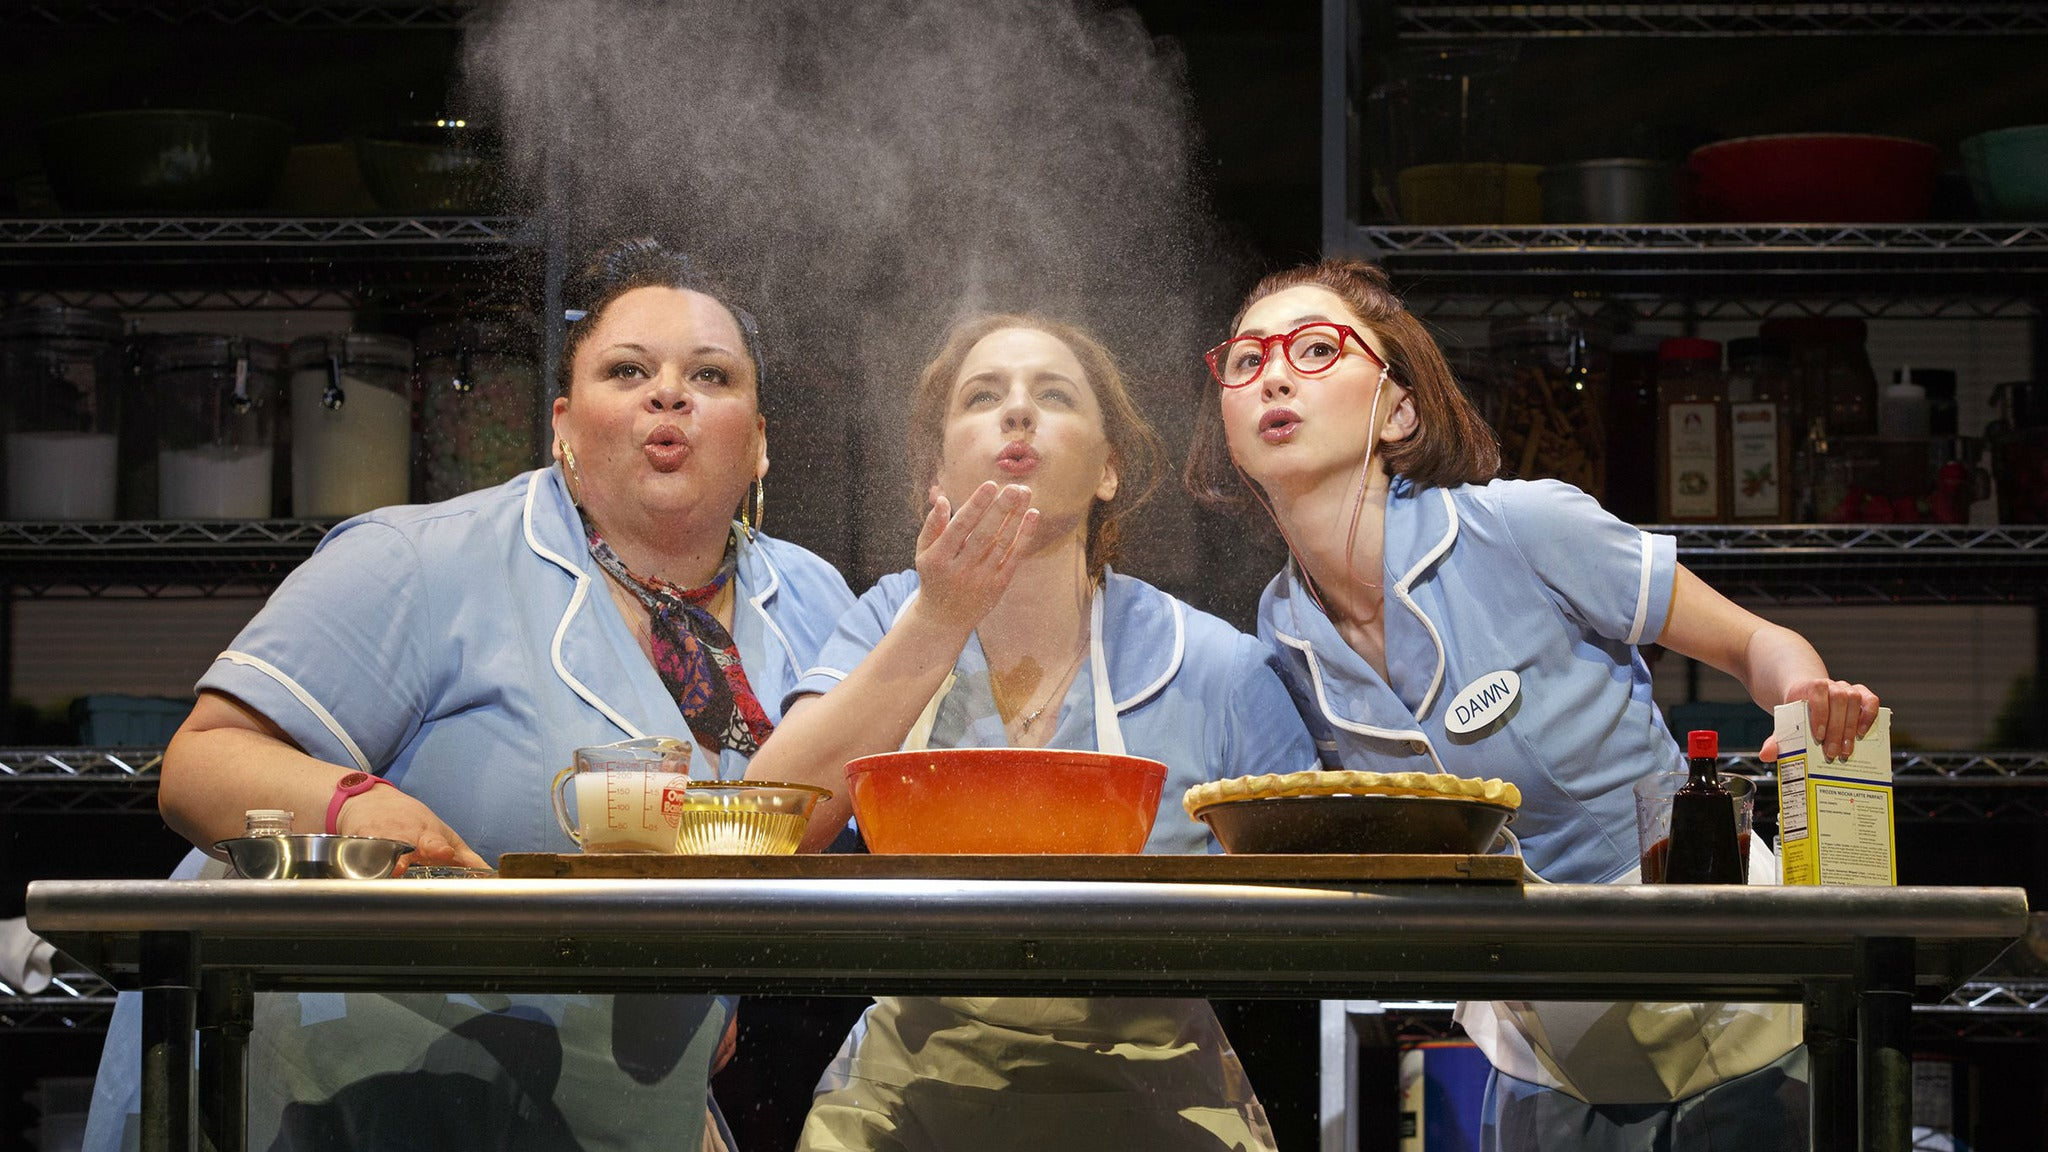 Waitress at Golden Gate Theatre - San Francisco, CA 94102